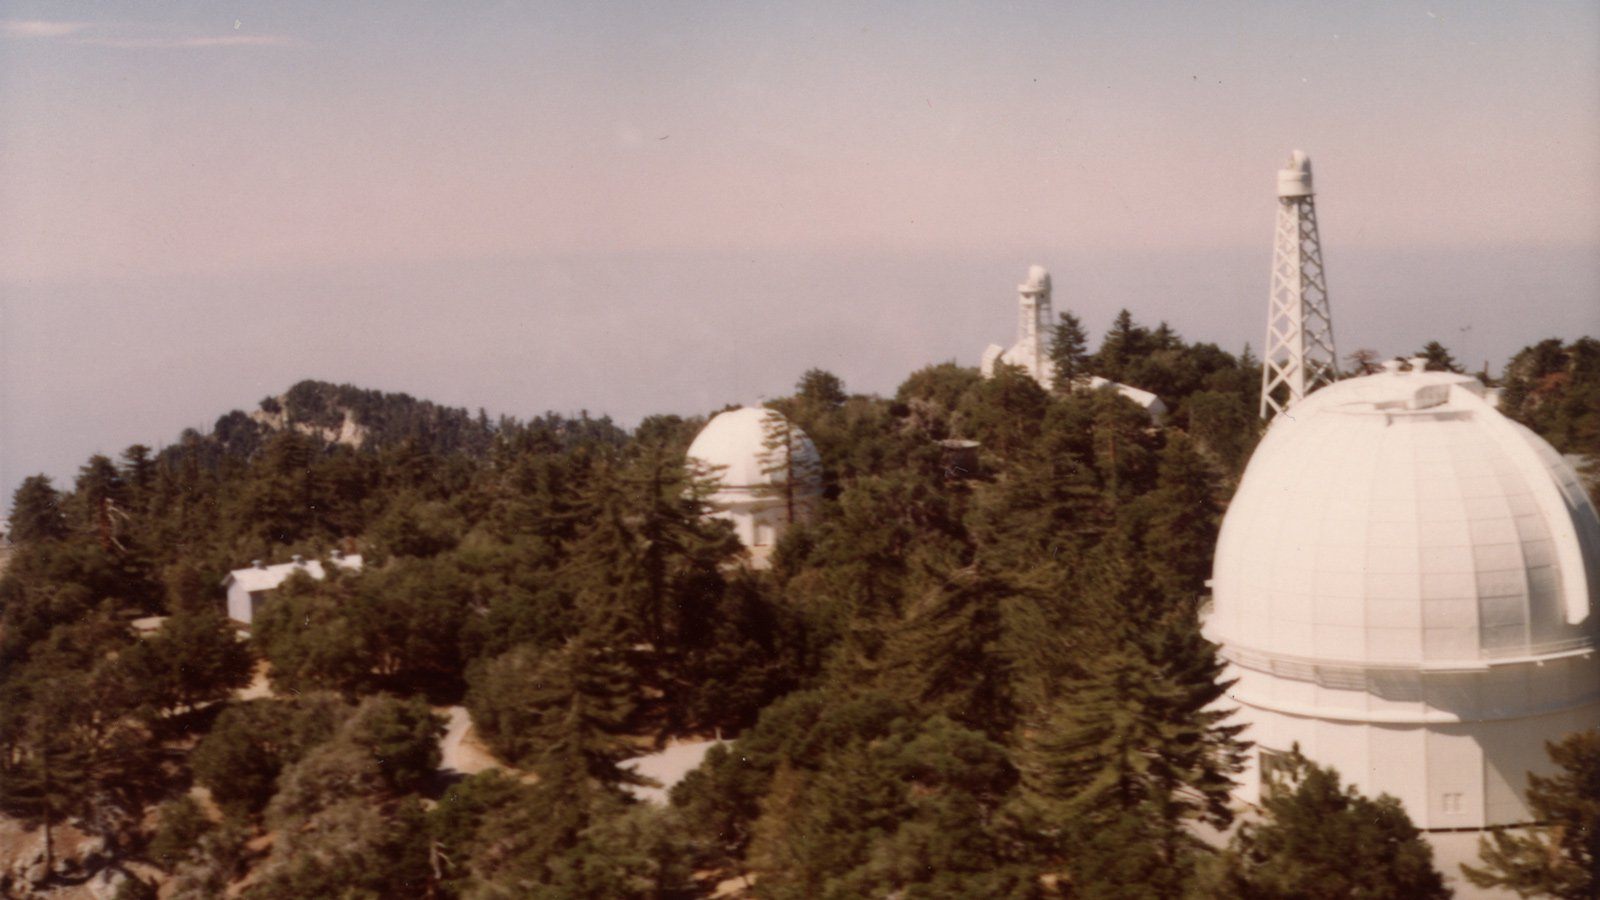 The Mount Wilson 60-inch and 100-inch telescopes. Credit: Image courtesy of the Observatories of the Carnegie Institution for Science Collection at the Huntington Library